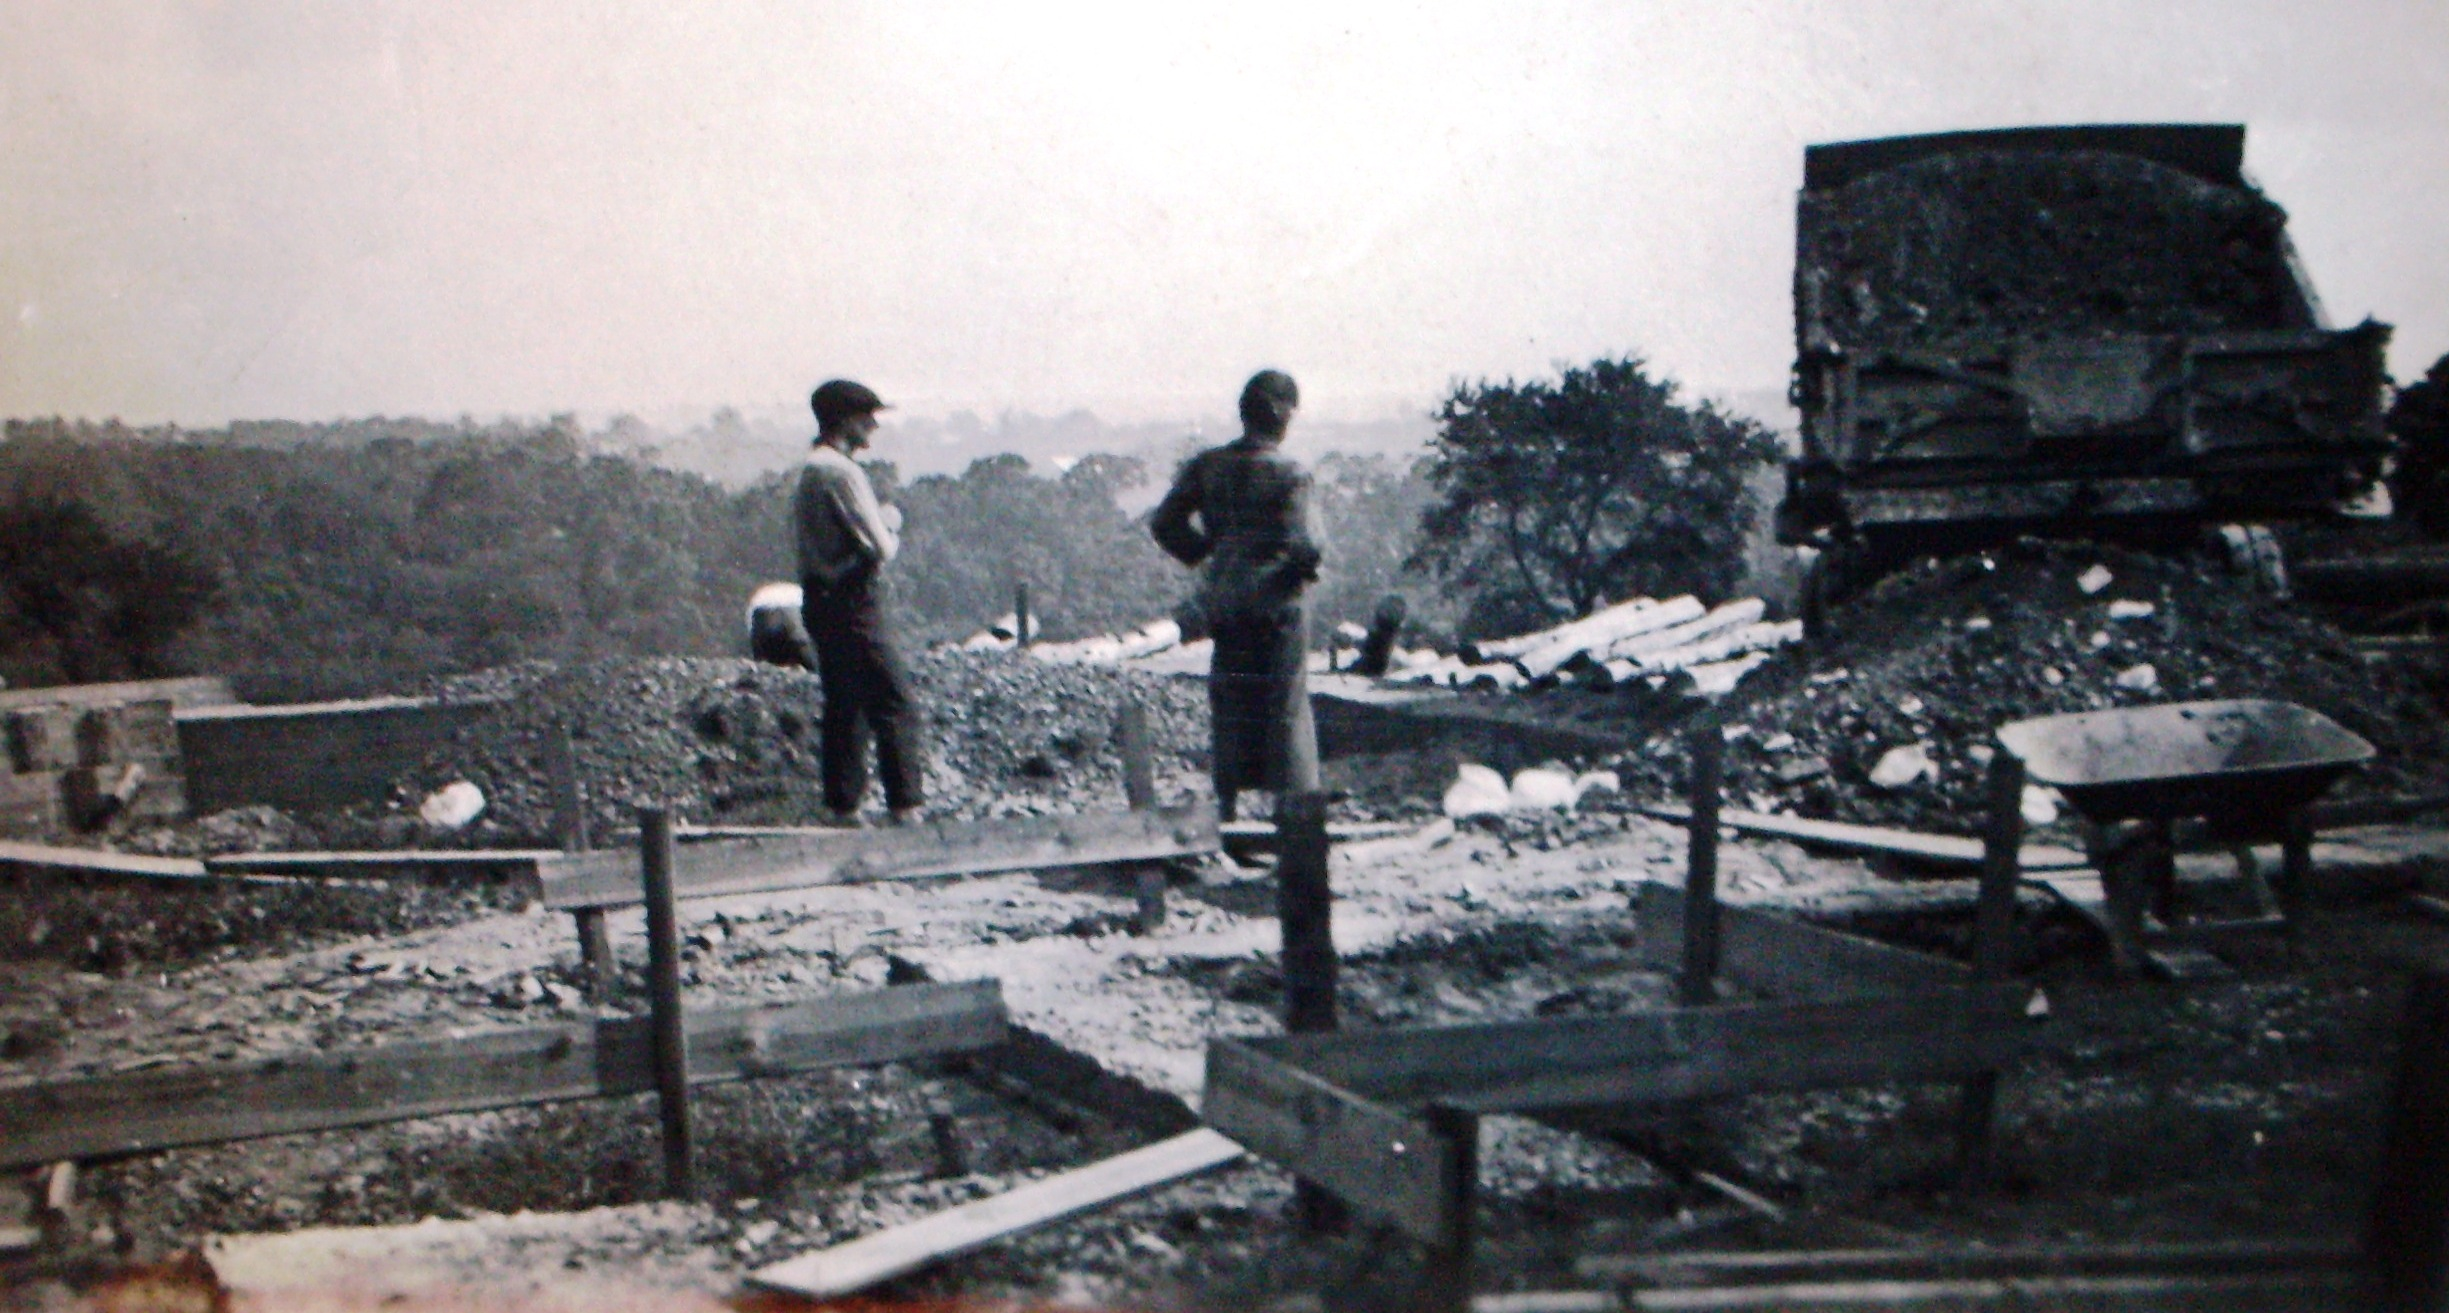 314th Infantry Memorial Log Cabin - Being re-erected at Valley Forge 1922 - Cabin Foundation Work